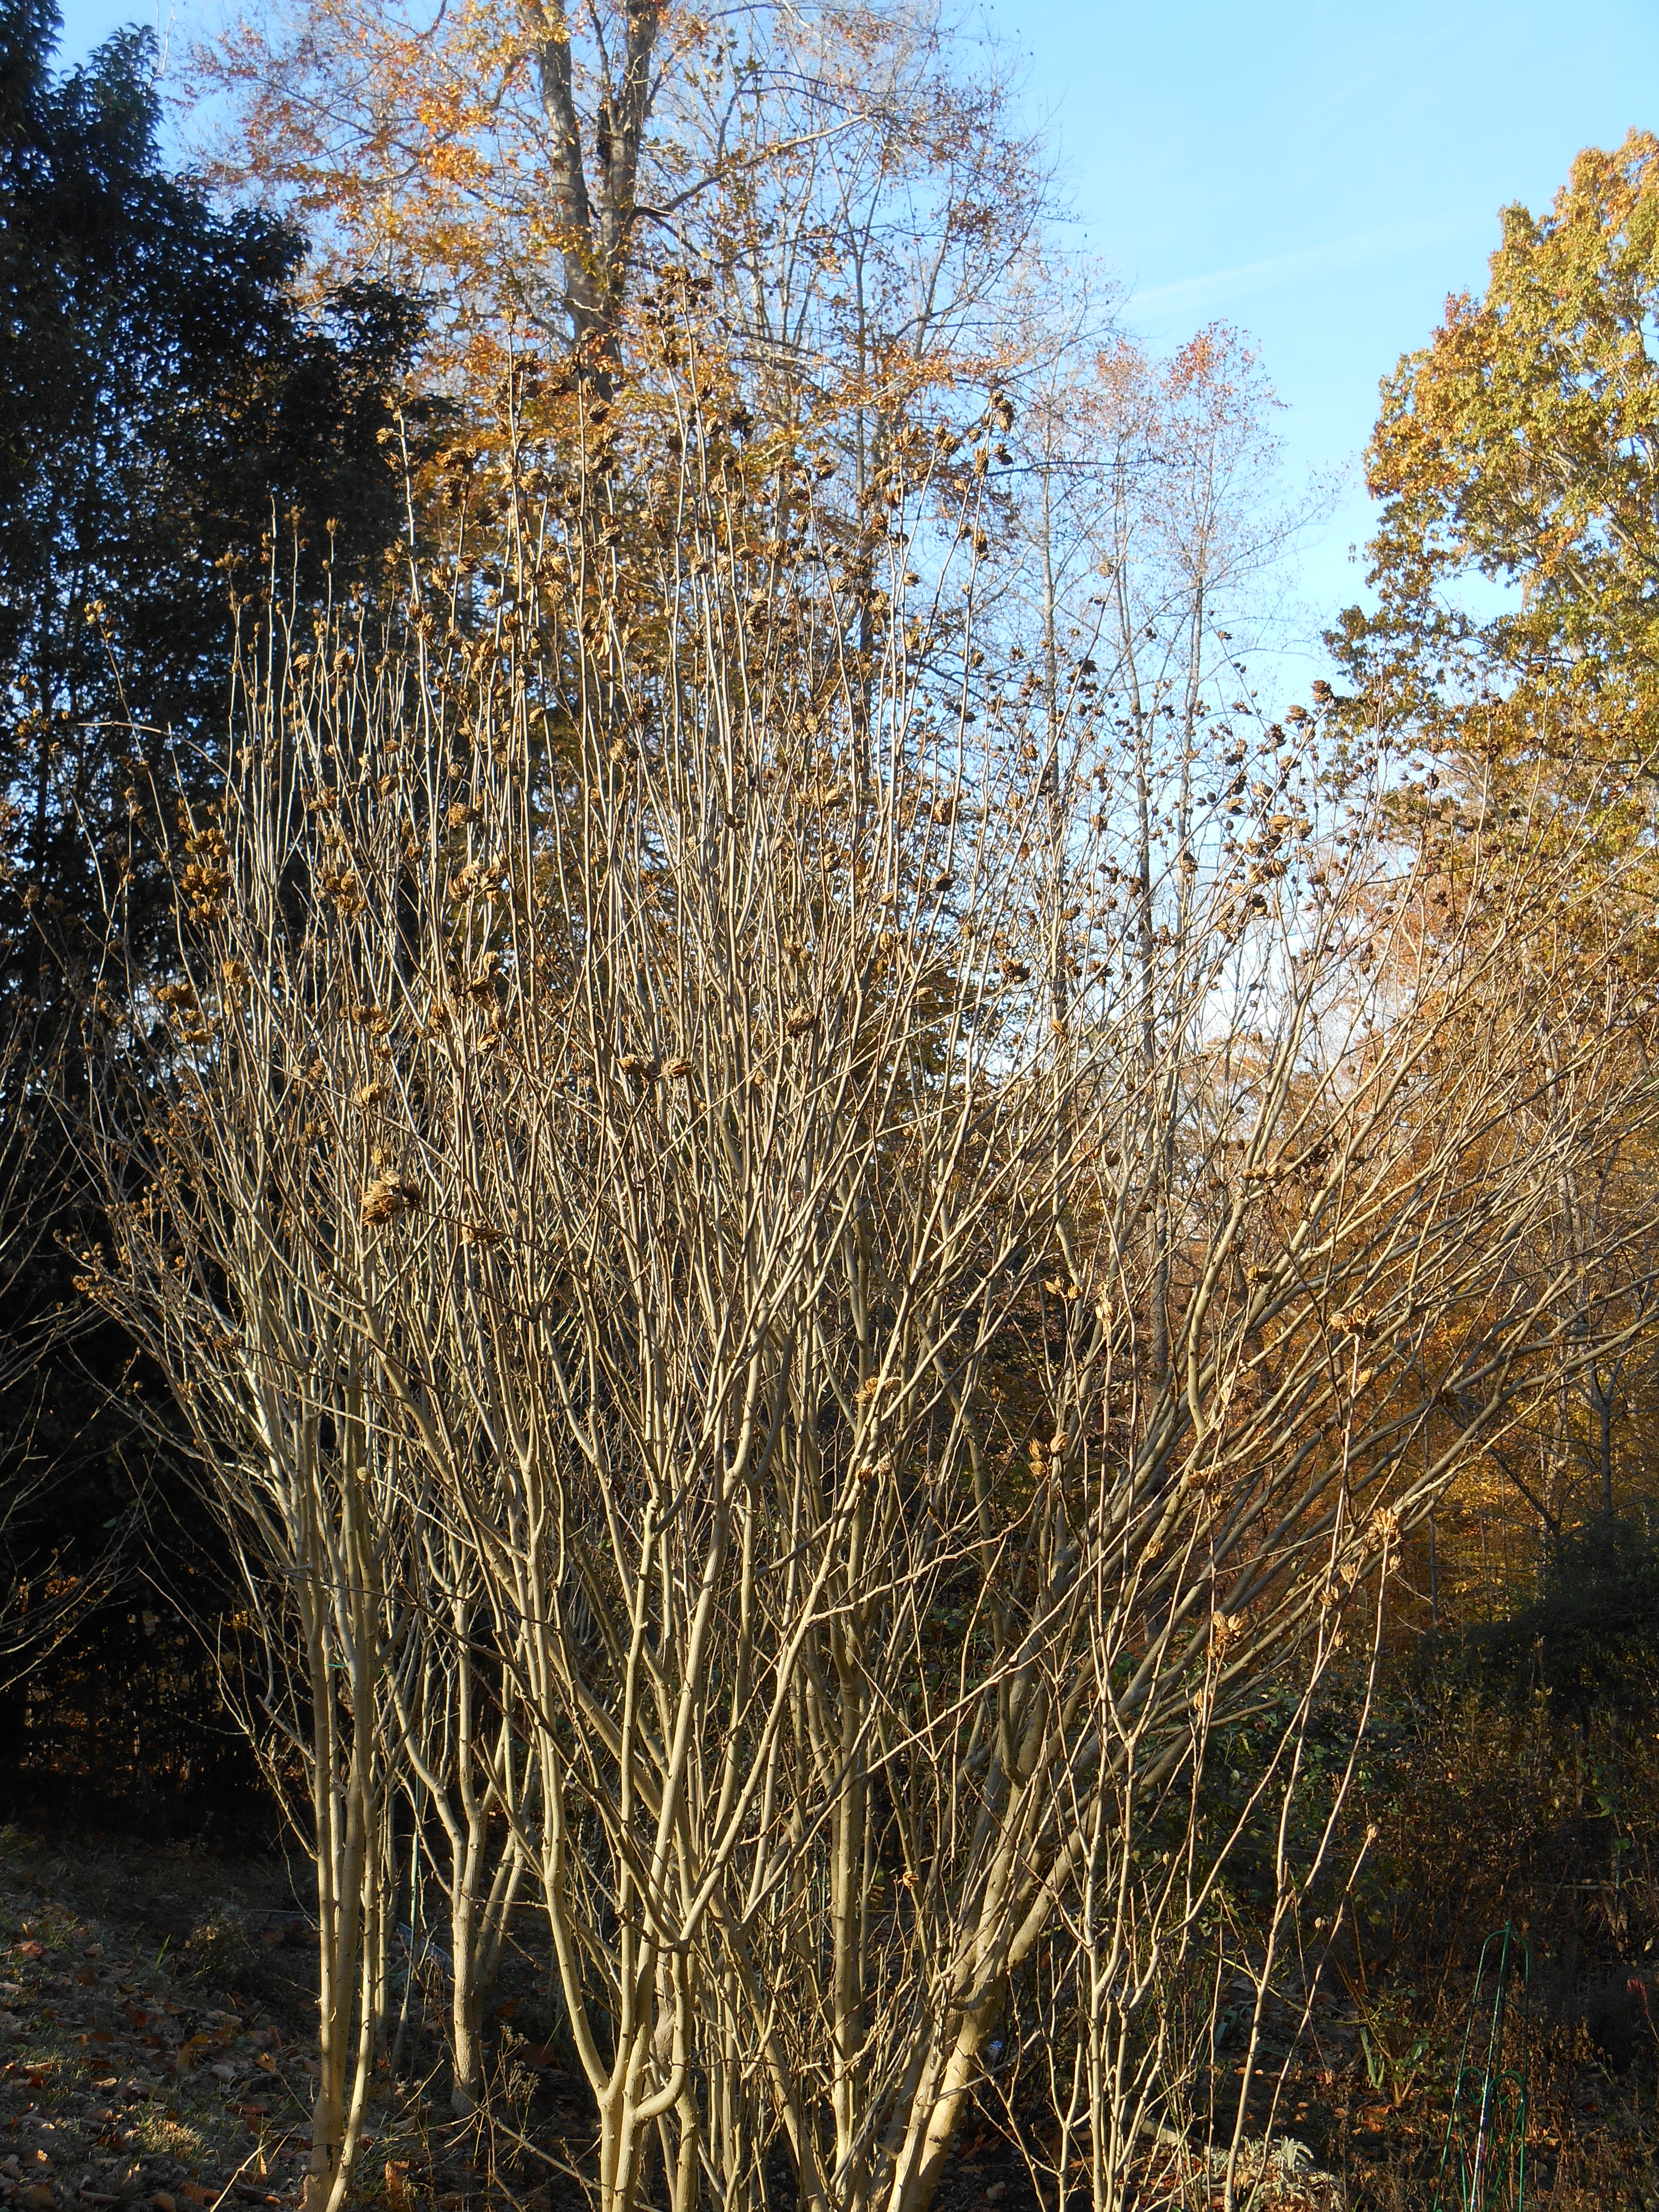 Rose of Sharon shrubs, covered in seeds.  These need thinning and shaping, but wait until spring.